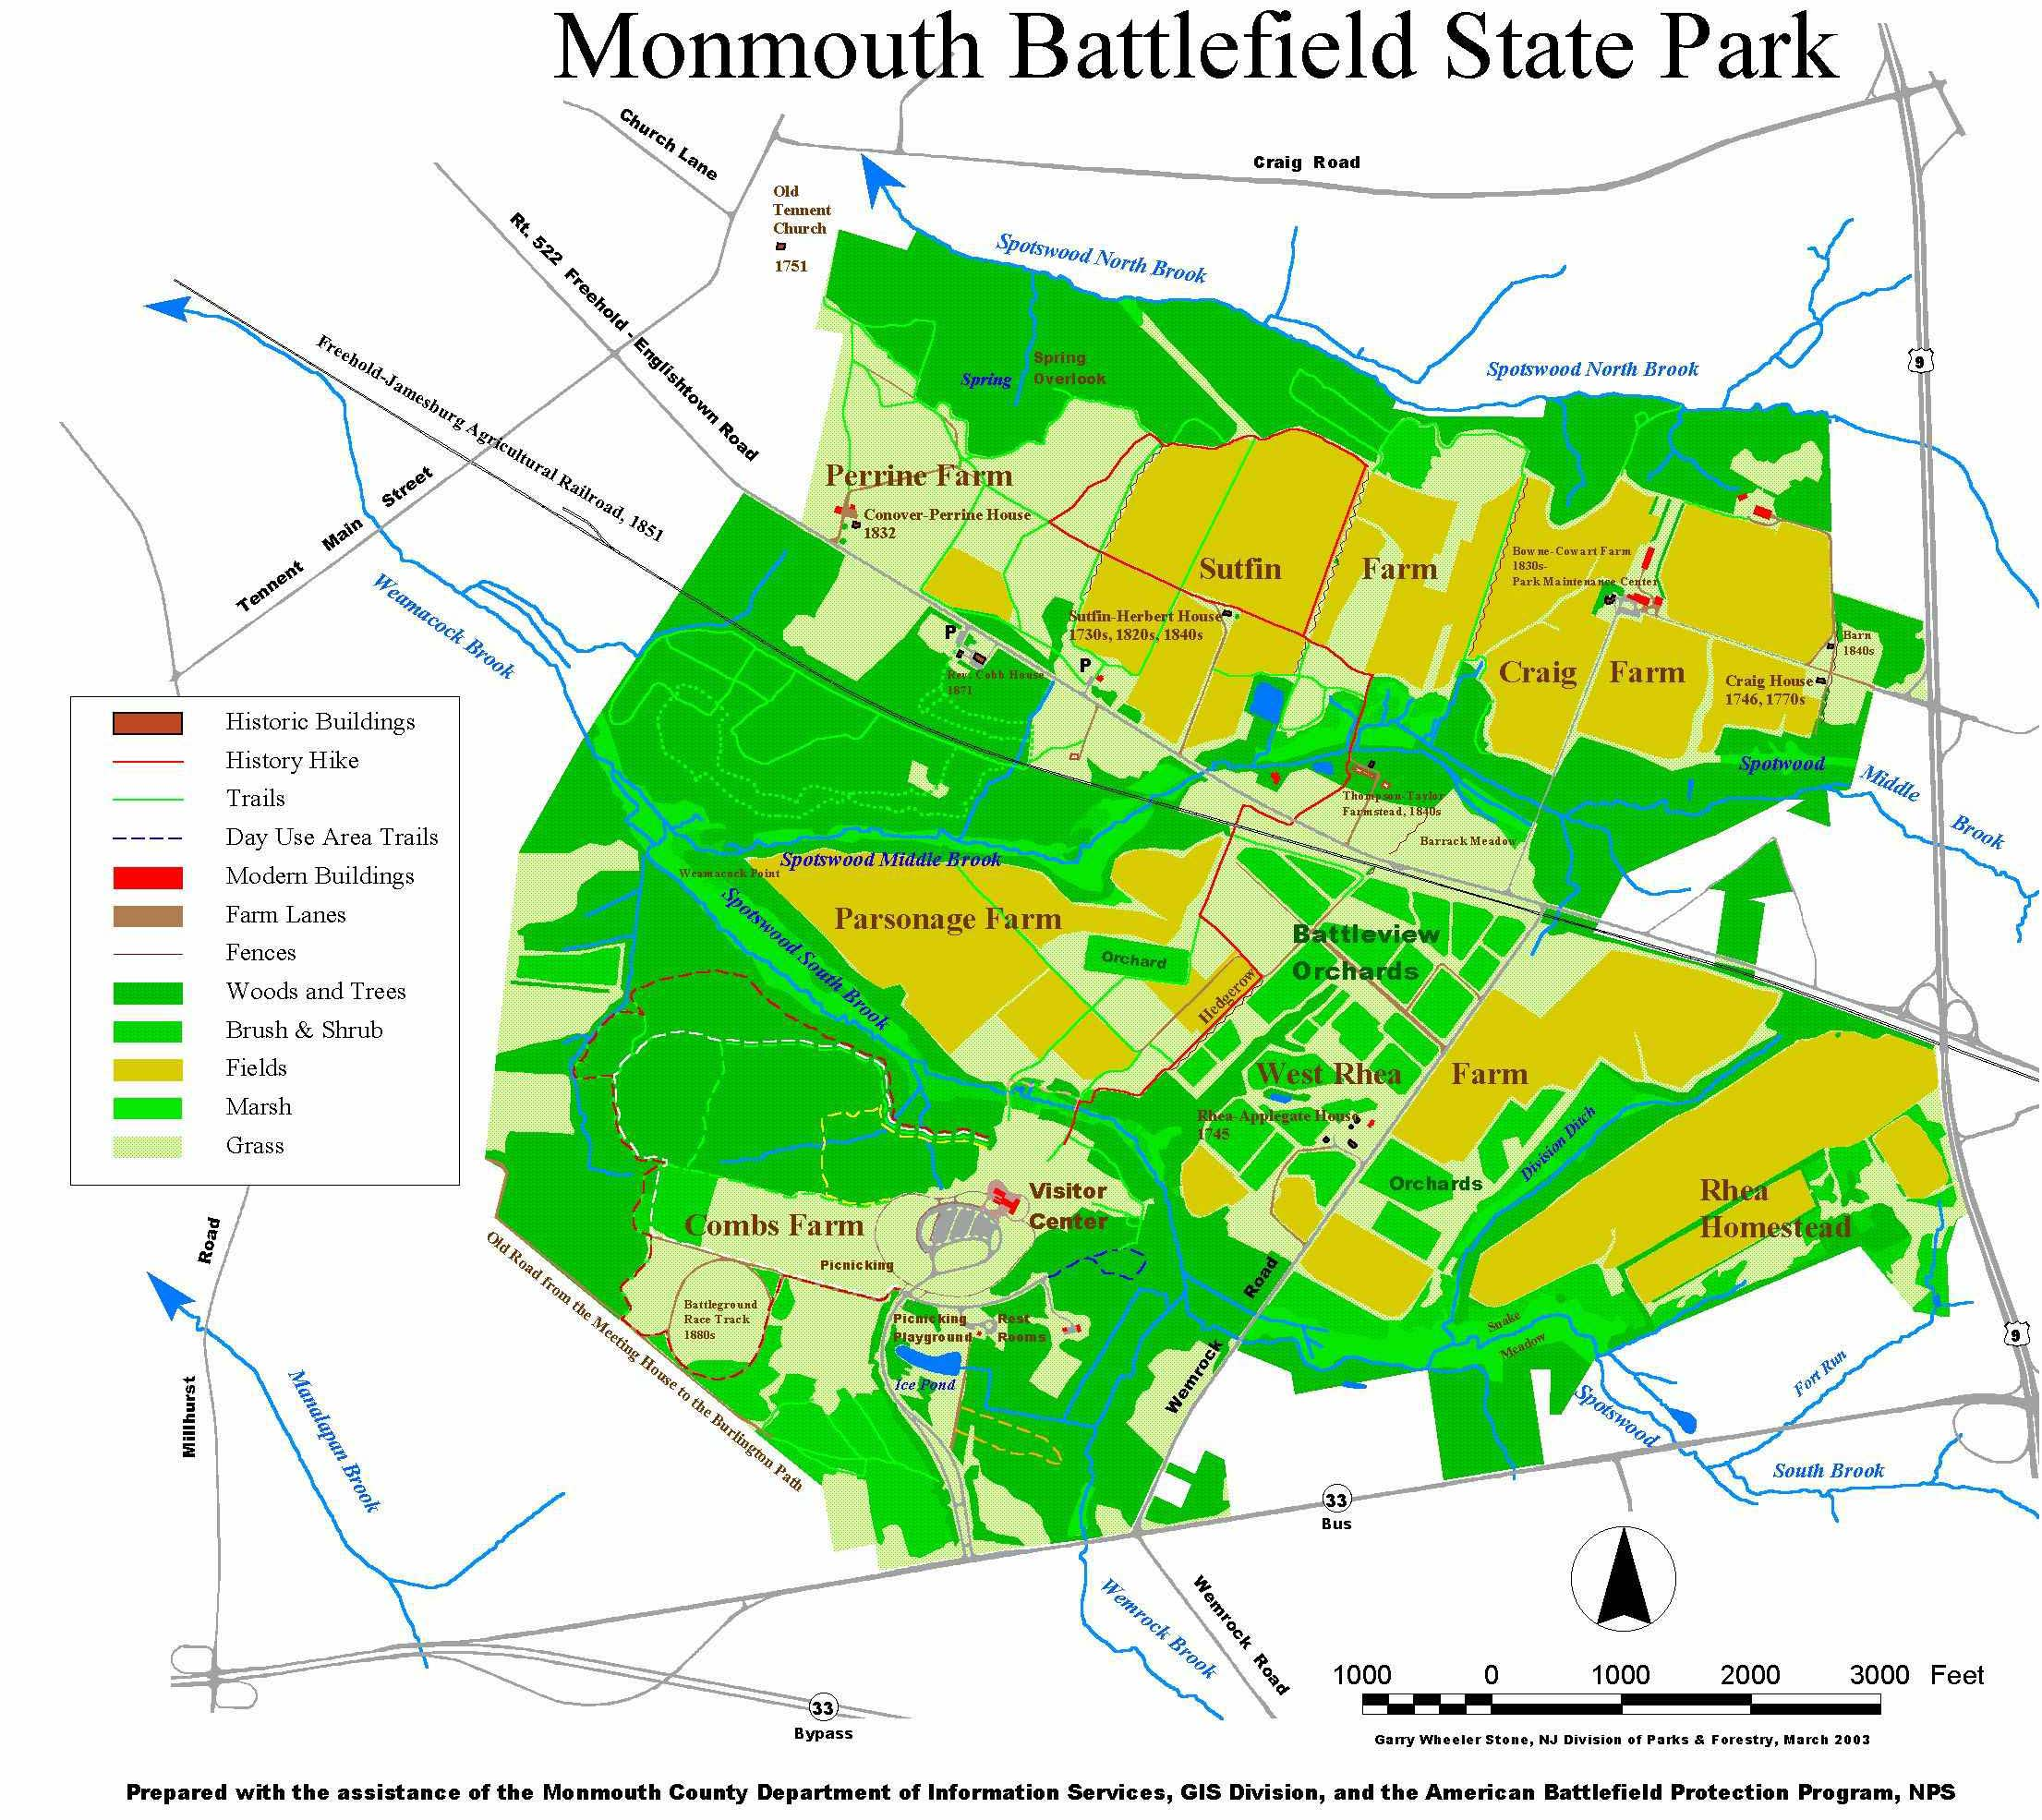 letchworth state park map with Monmouth Battlefield State Park Snowshoe on 1GNsf Letchworth State Park Livingston County New York moreover Monmouth Battlefield State Park Snowshoe as well Travel Tourism besides Image5 likewise Maps And Gps.